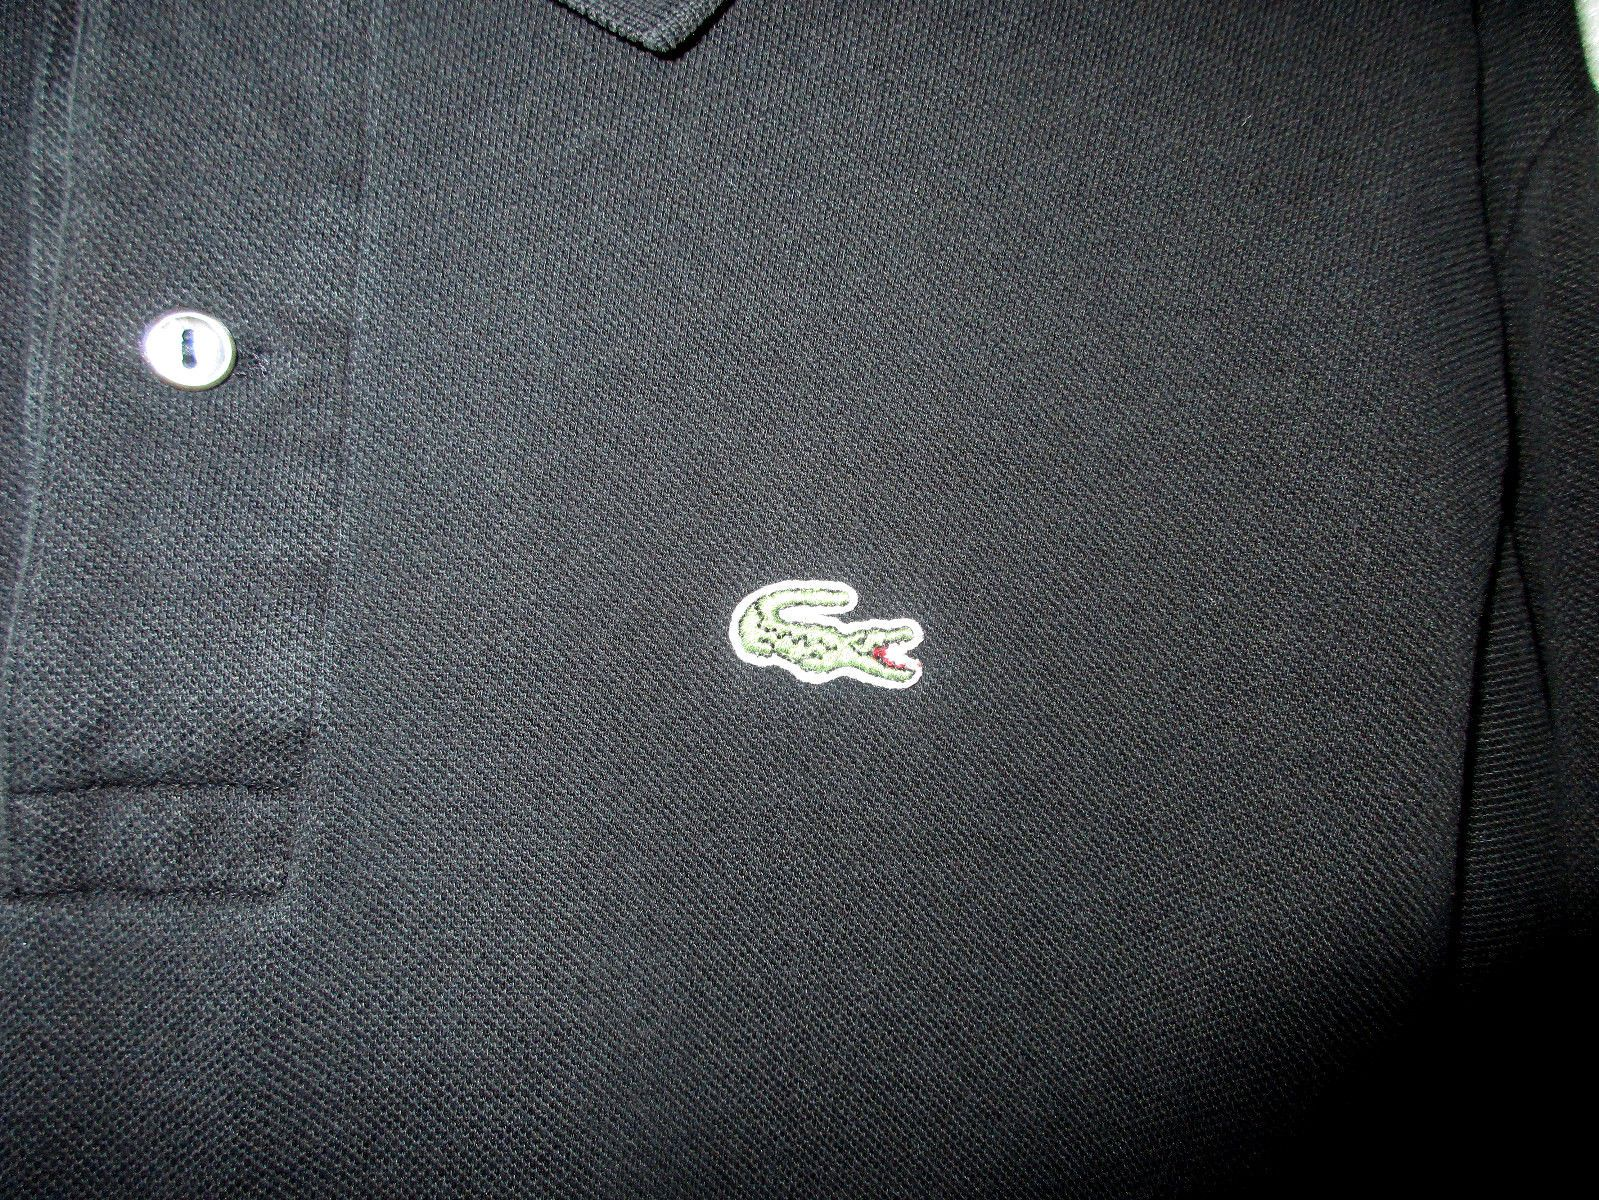 Mens Lacoste L.S. Polo Shirt / Size-6= Large / Very Good Condition /P2P=22-1/2